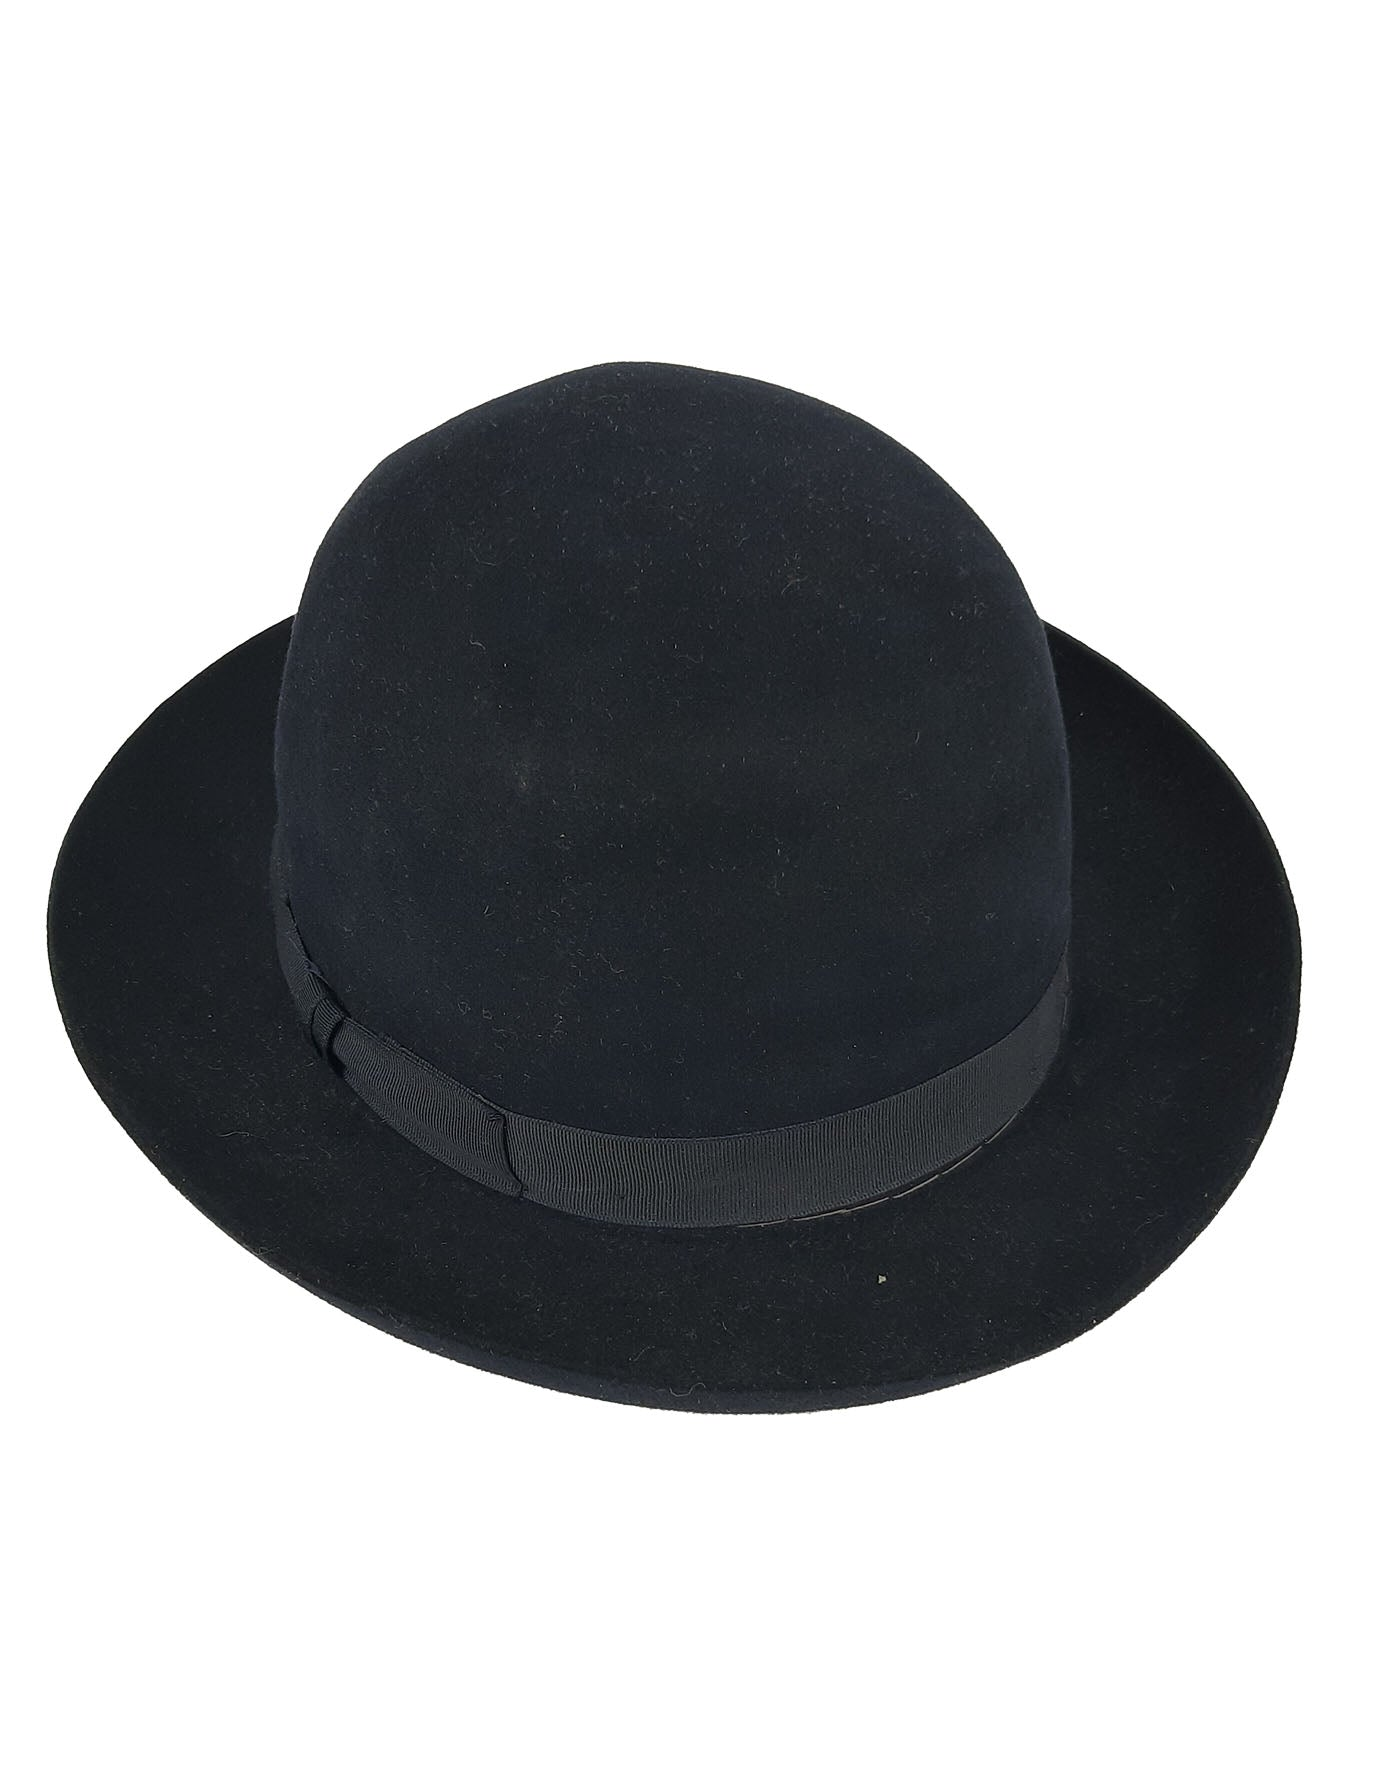 H&K 1899 Tailor Made Highest Quality Wool Hat in Dark Blue  55-56 cm